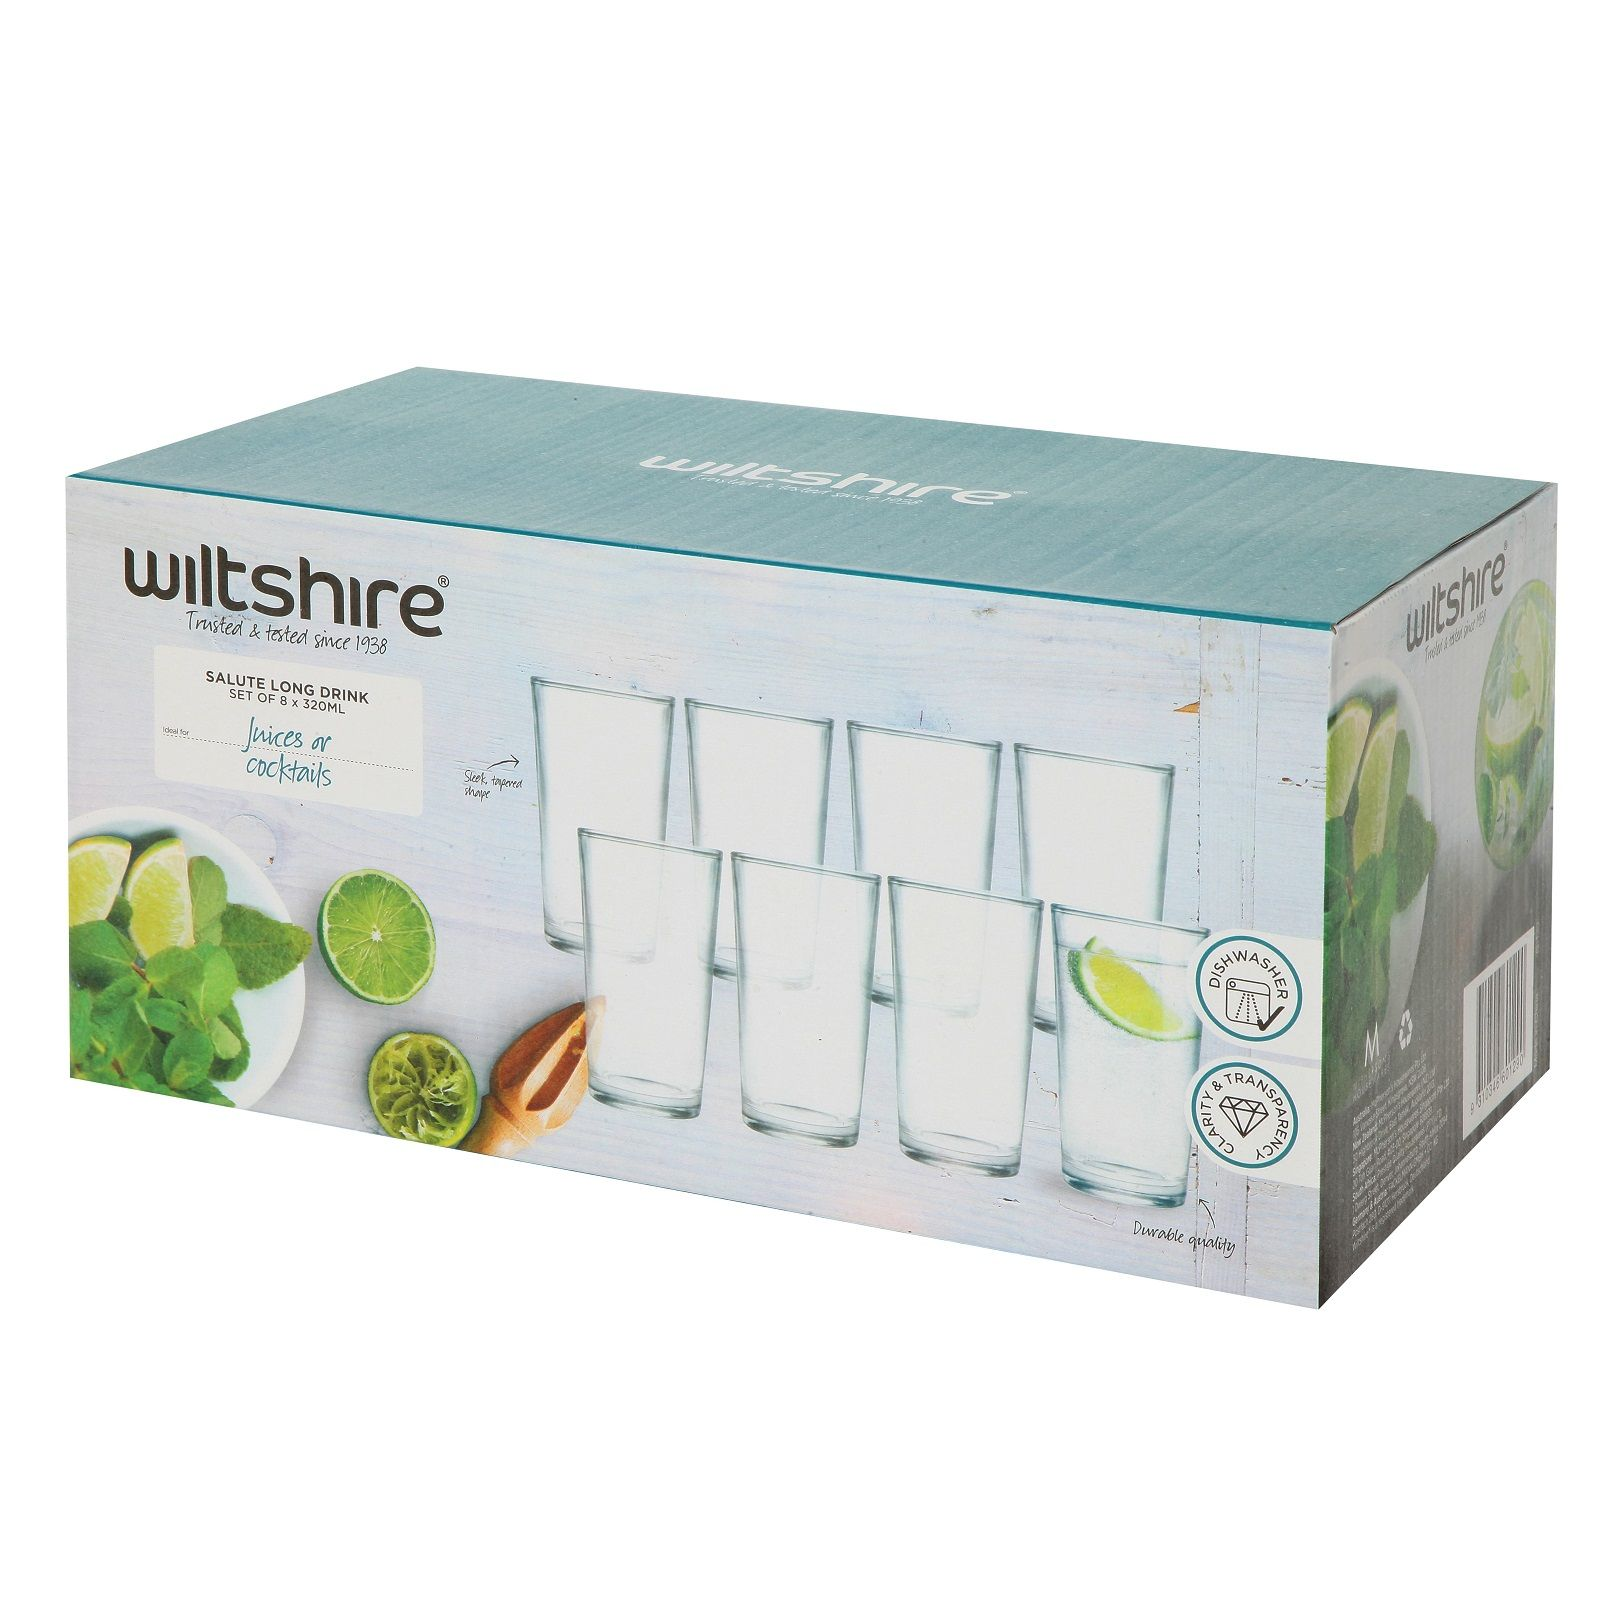 WILTSHIRE SALUTE LONG DRINK GLASSES 320ml SET OF 8